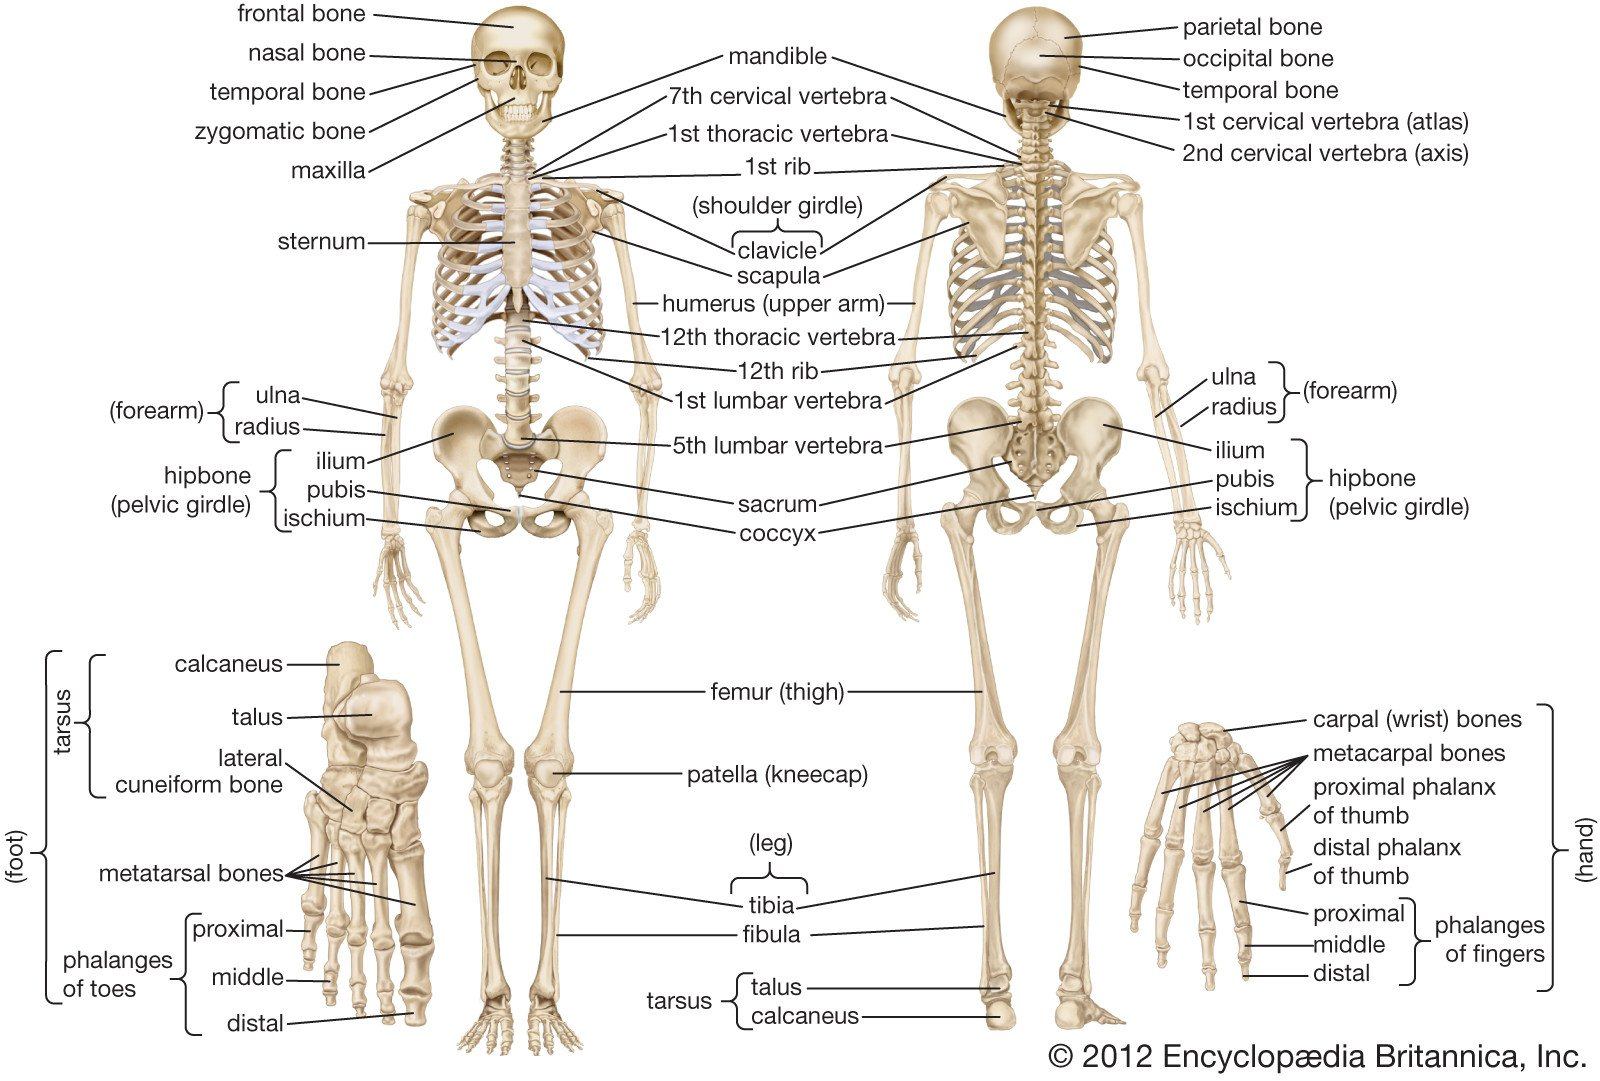 Anatomy and Physiology Labeling Worksheets Human Skeleton Parts Functions Diagram & Facts